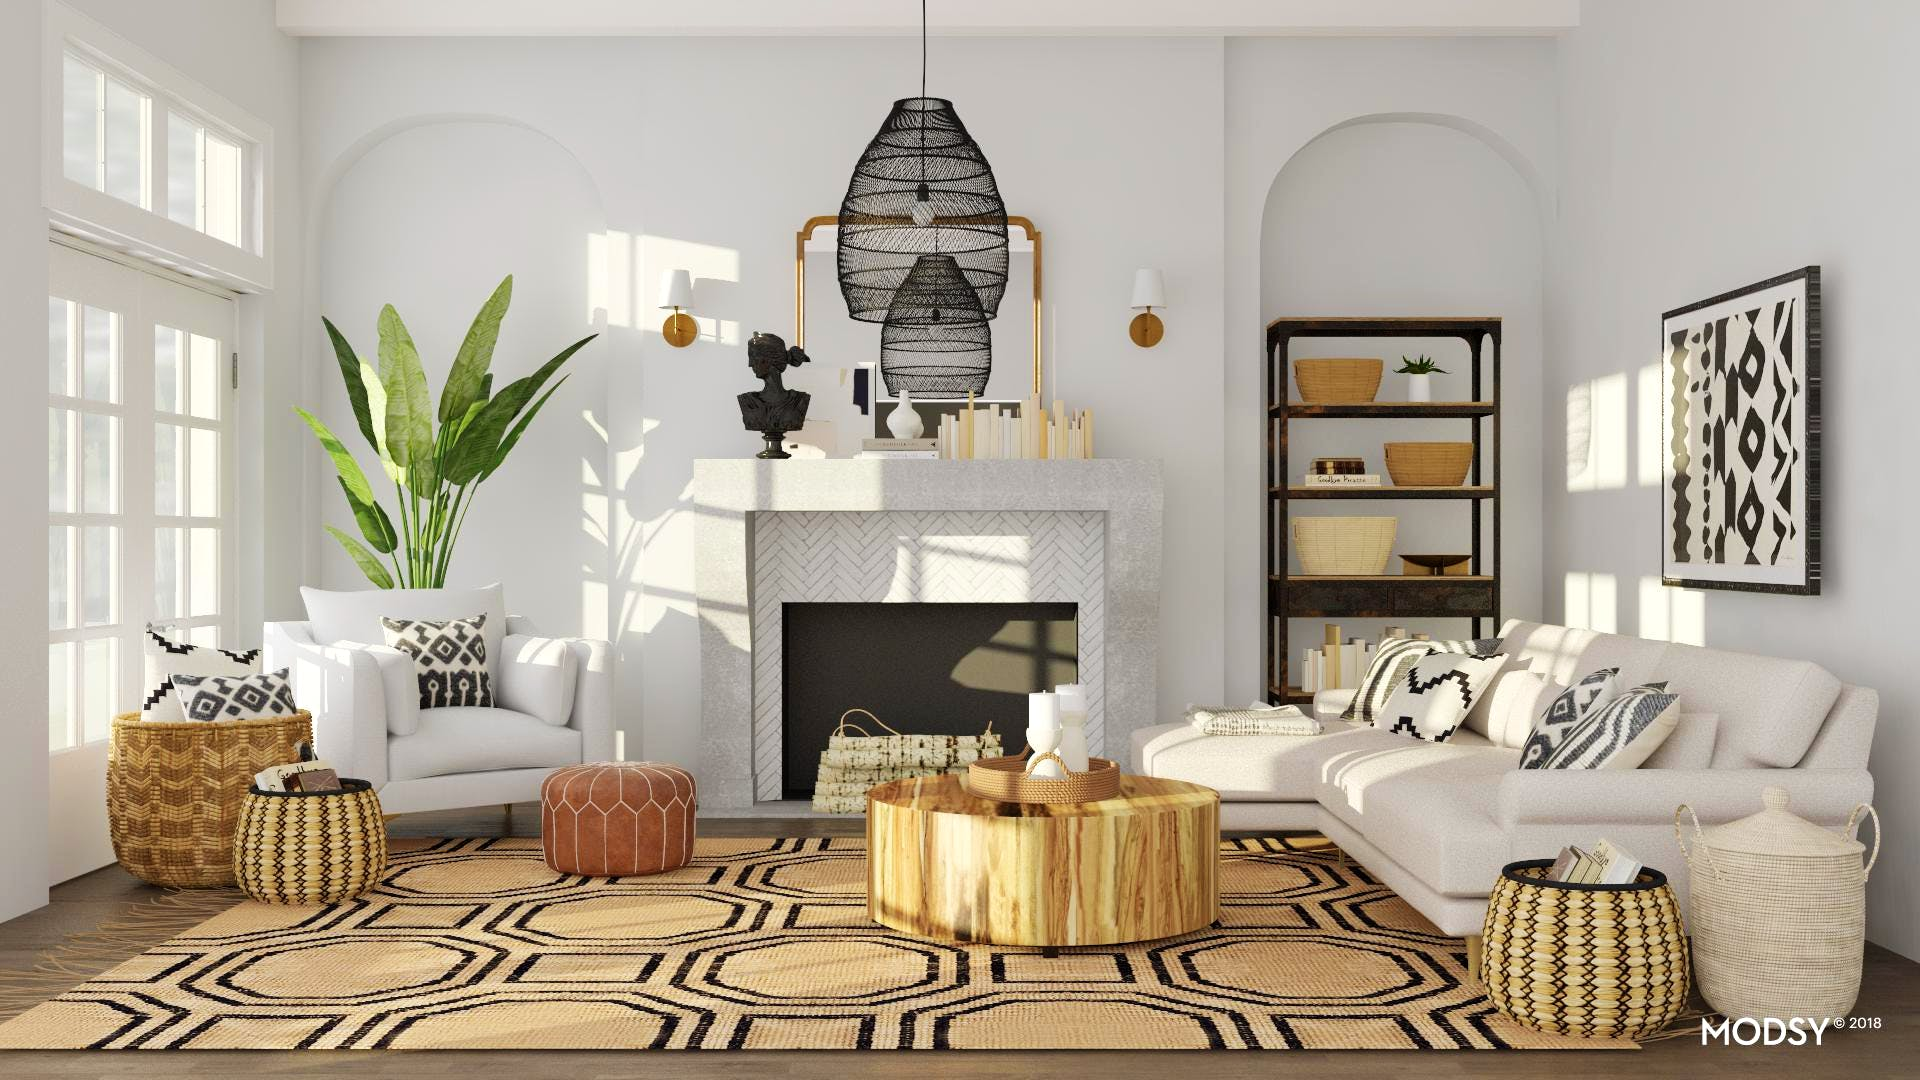 Jute Rug Design Ideas and Styles from Modsy Designers